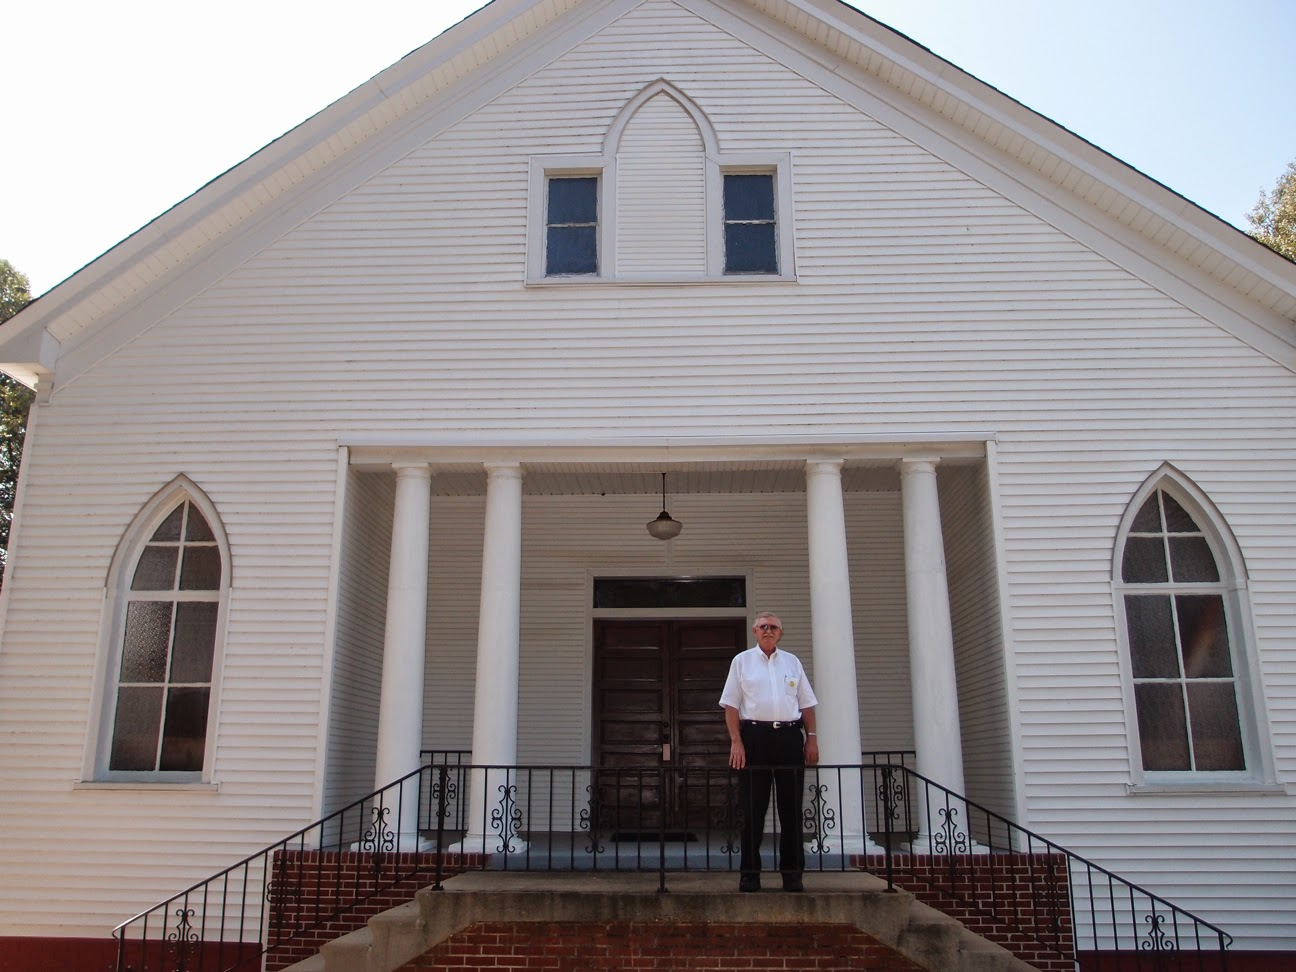 Tennessee haywood county stanton - The First Baptist Church Of Stanton Tennessee